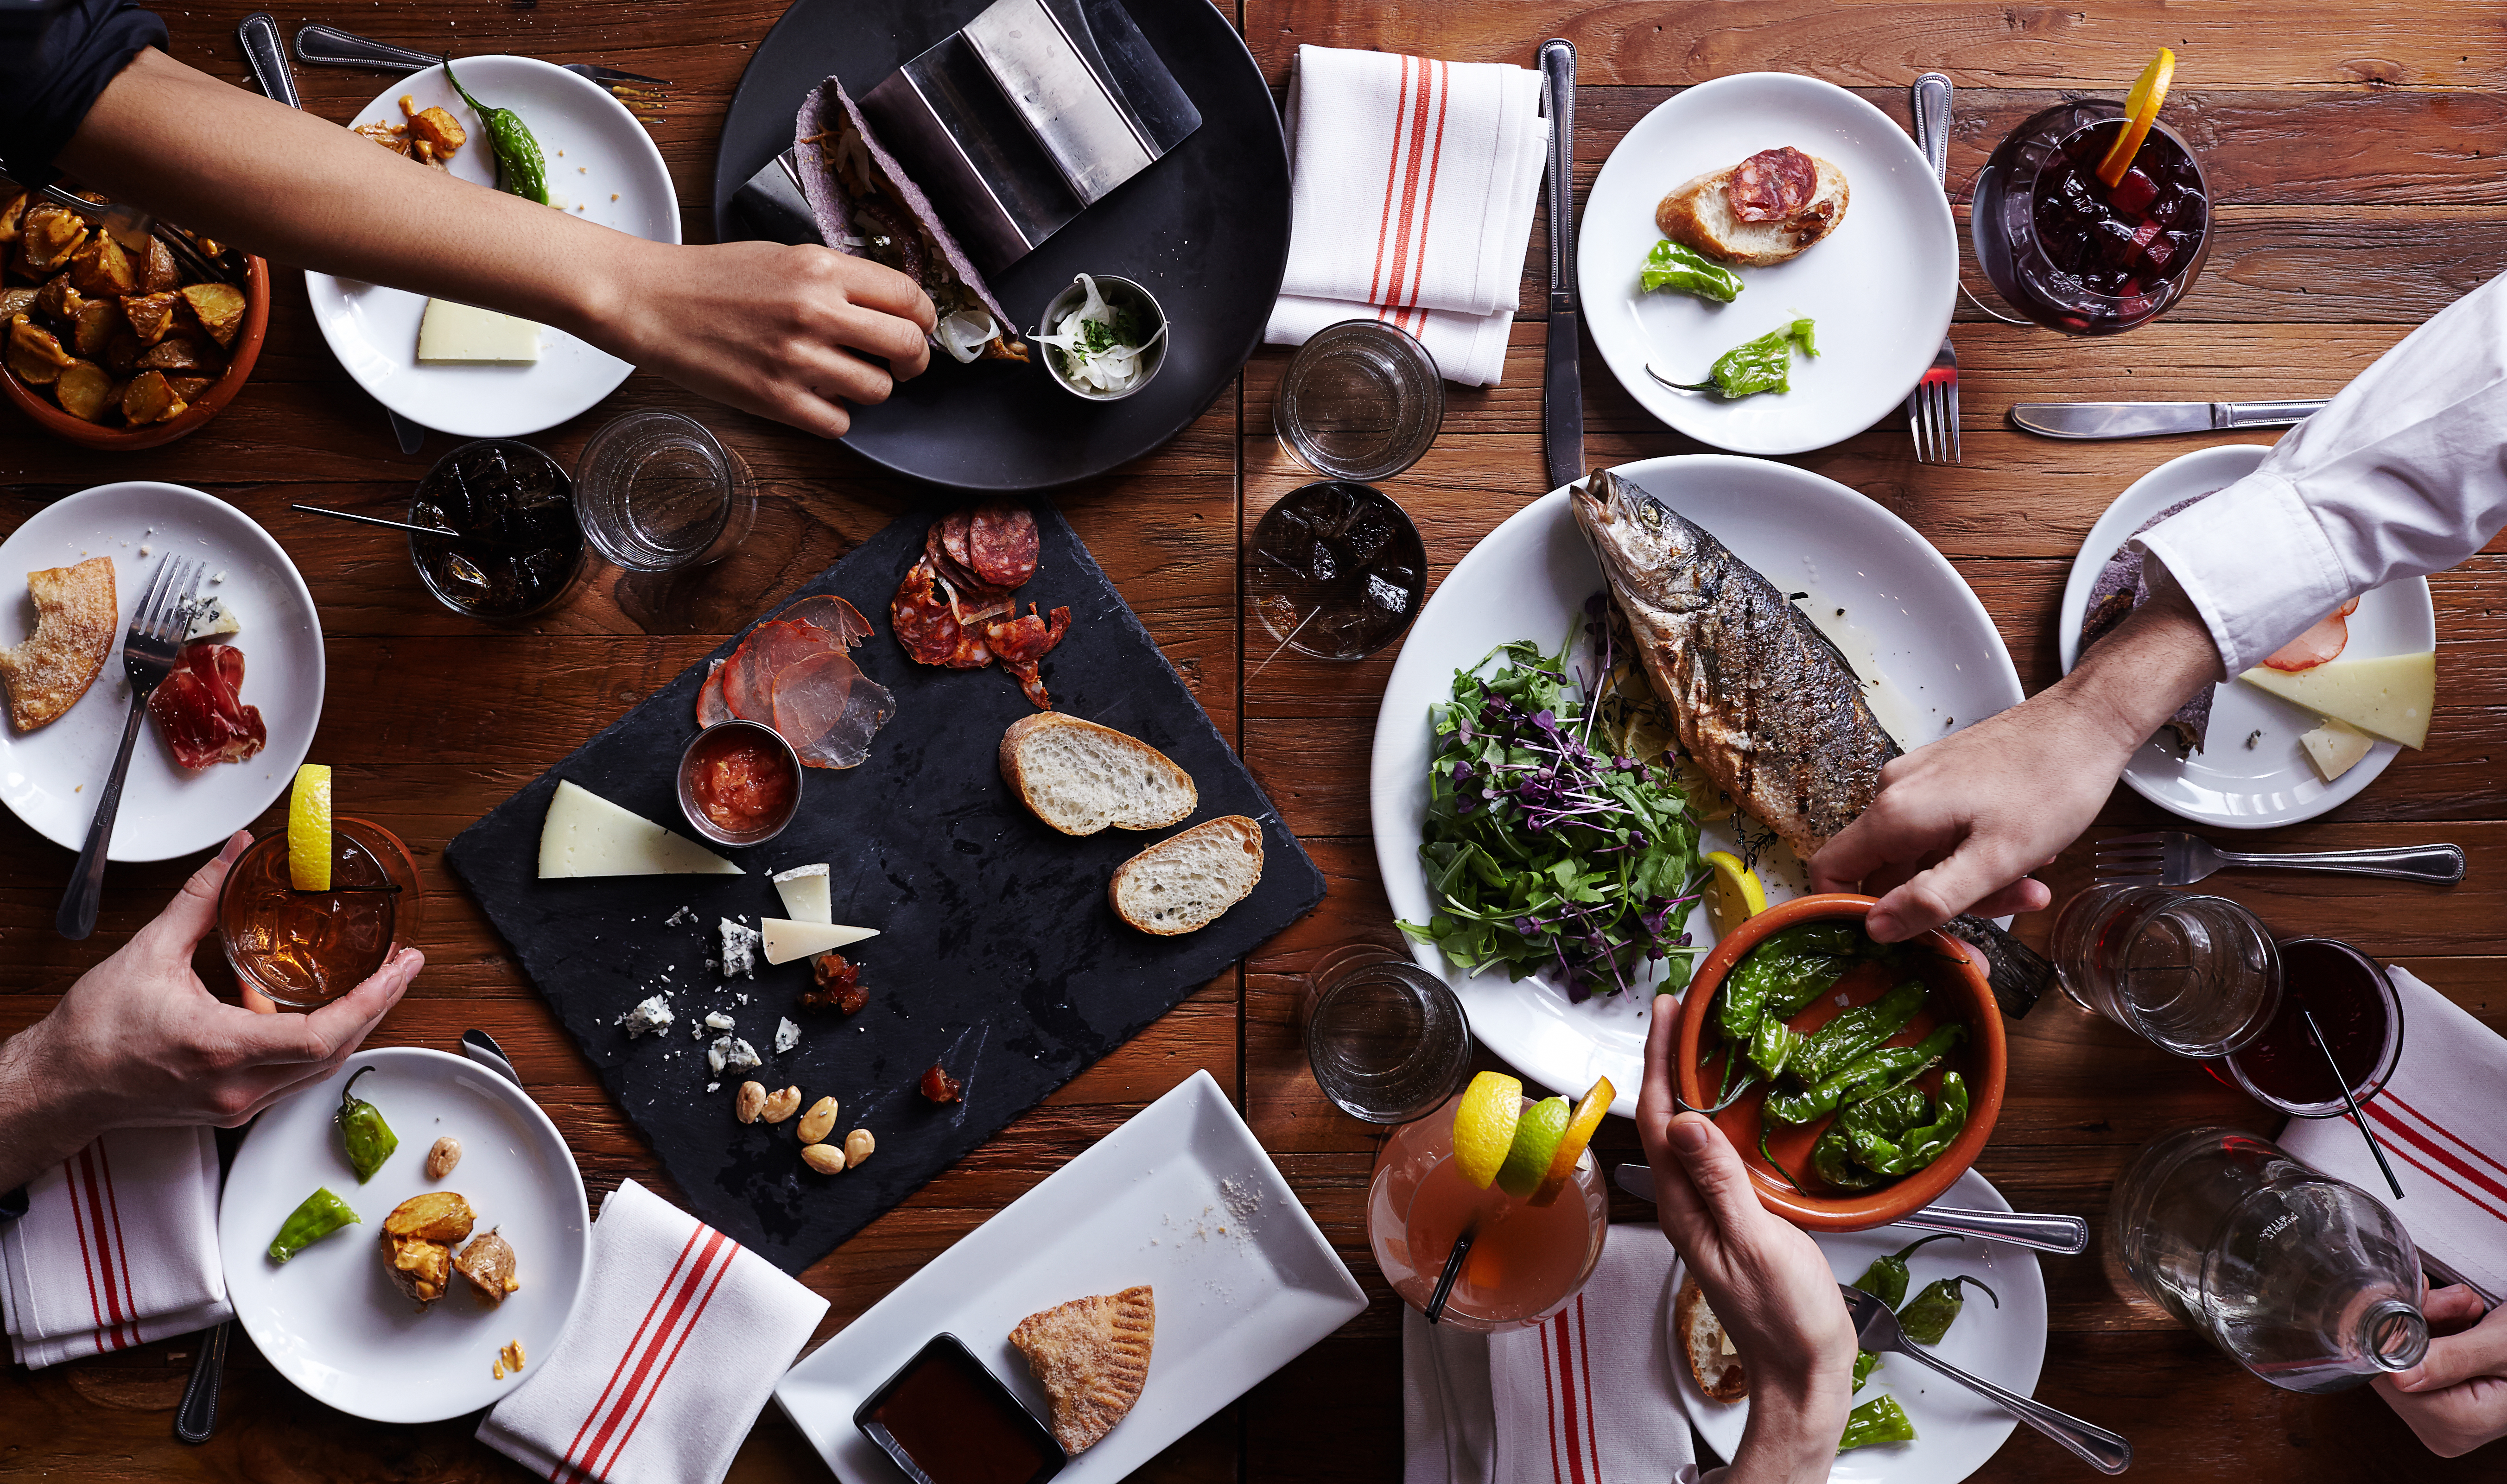 An aerial view of a group of people passing dinner plates with fish, charcuterie, and a variety of tapas and drinks.